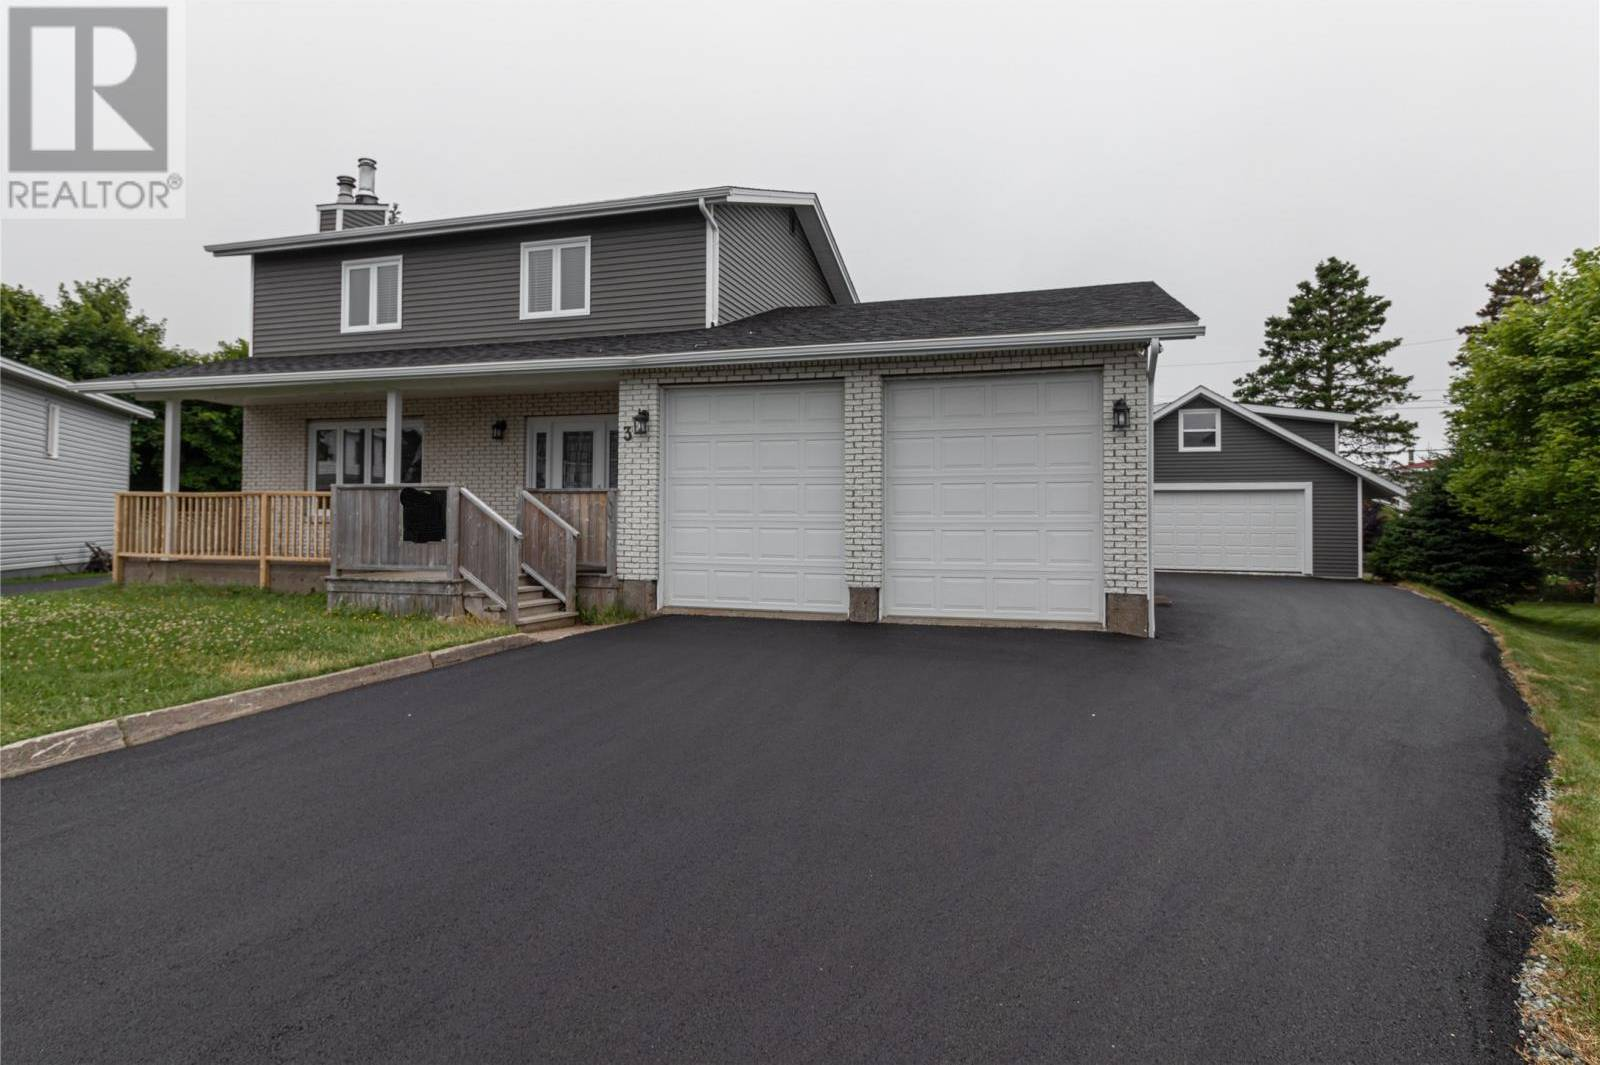 House for sale at 3 Wilchris Pl Mount Pearl Newfoundland - MLS: 1192417